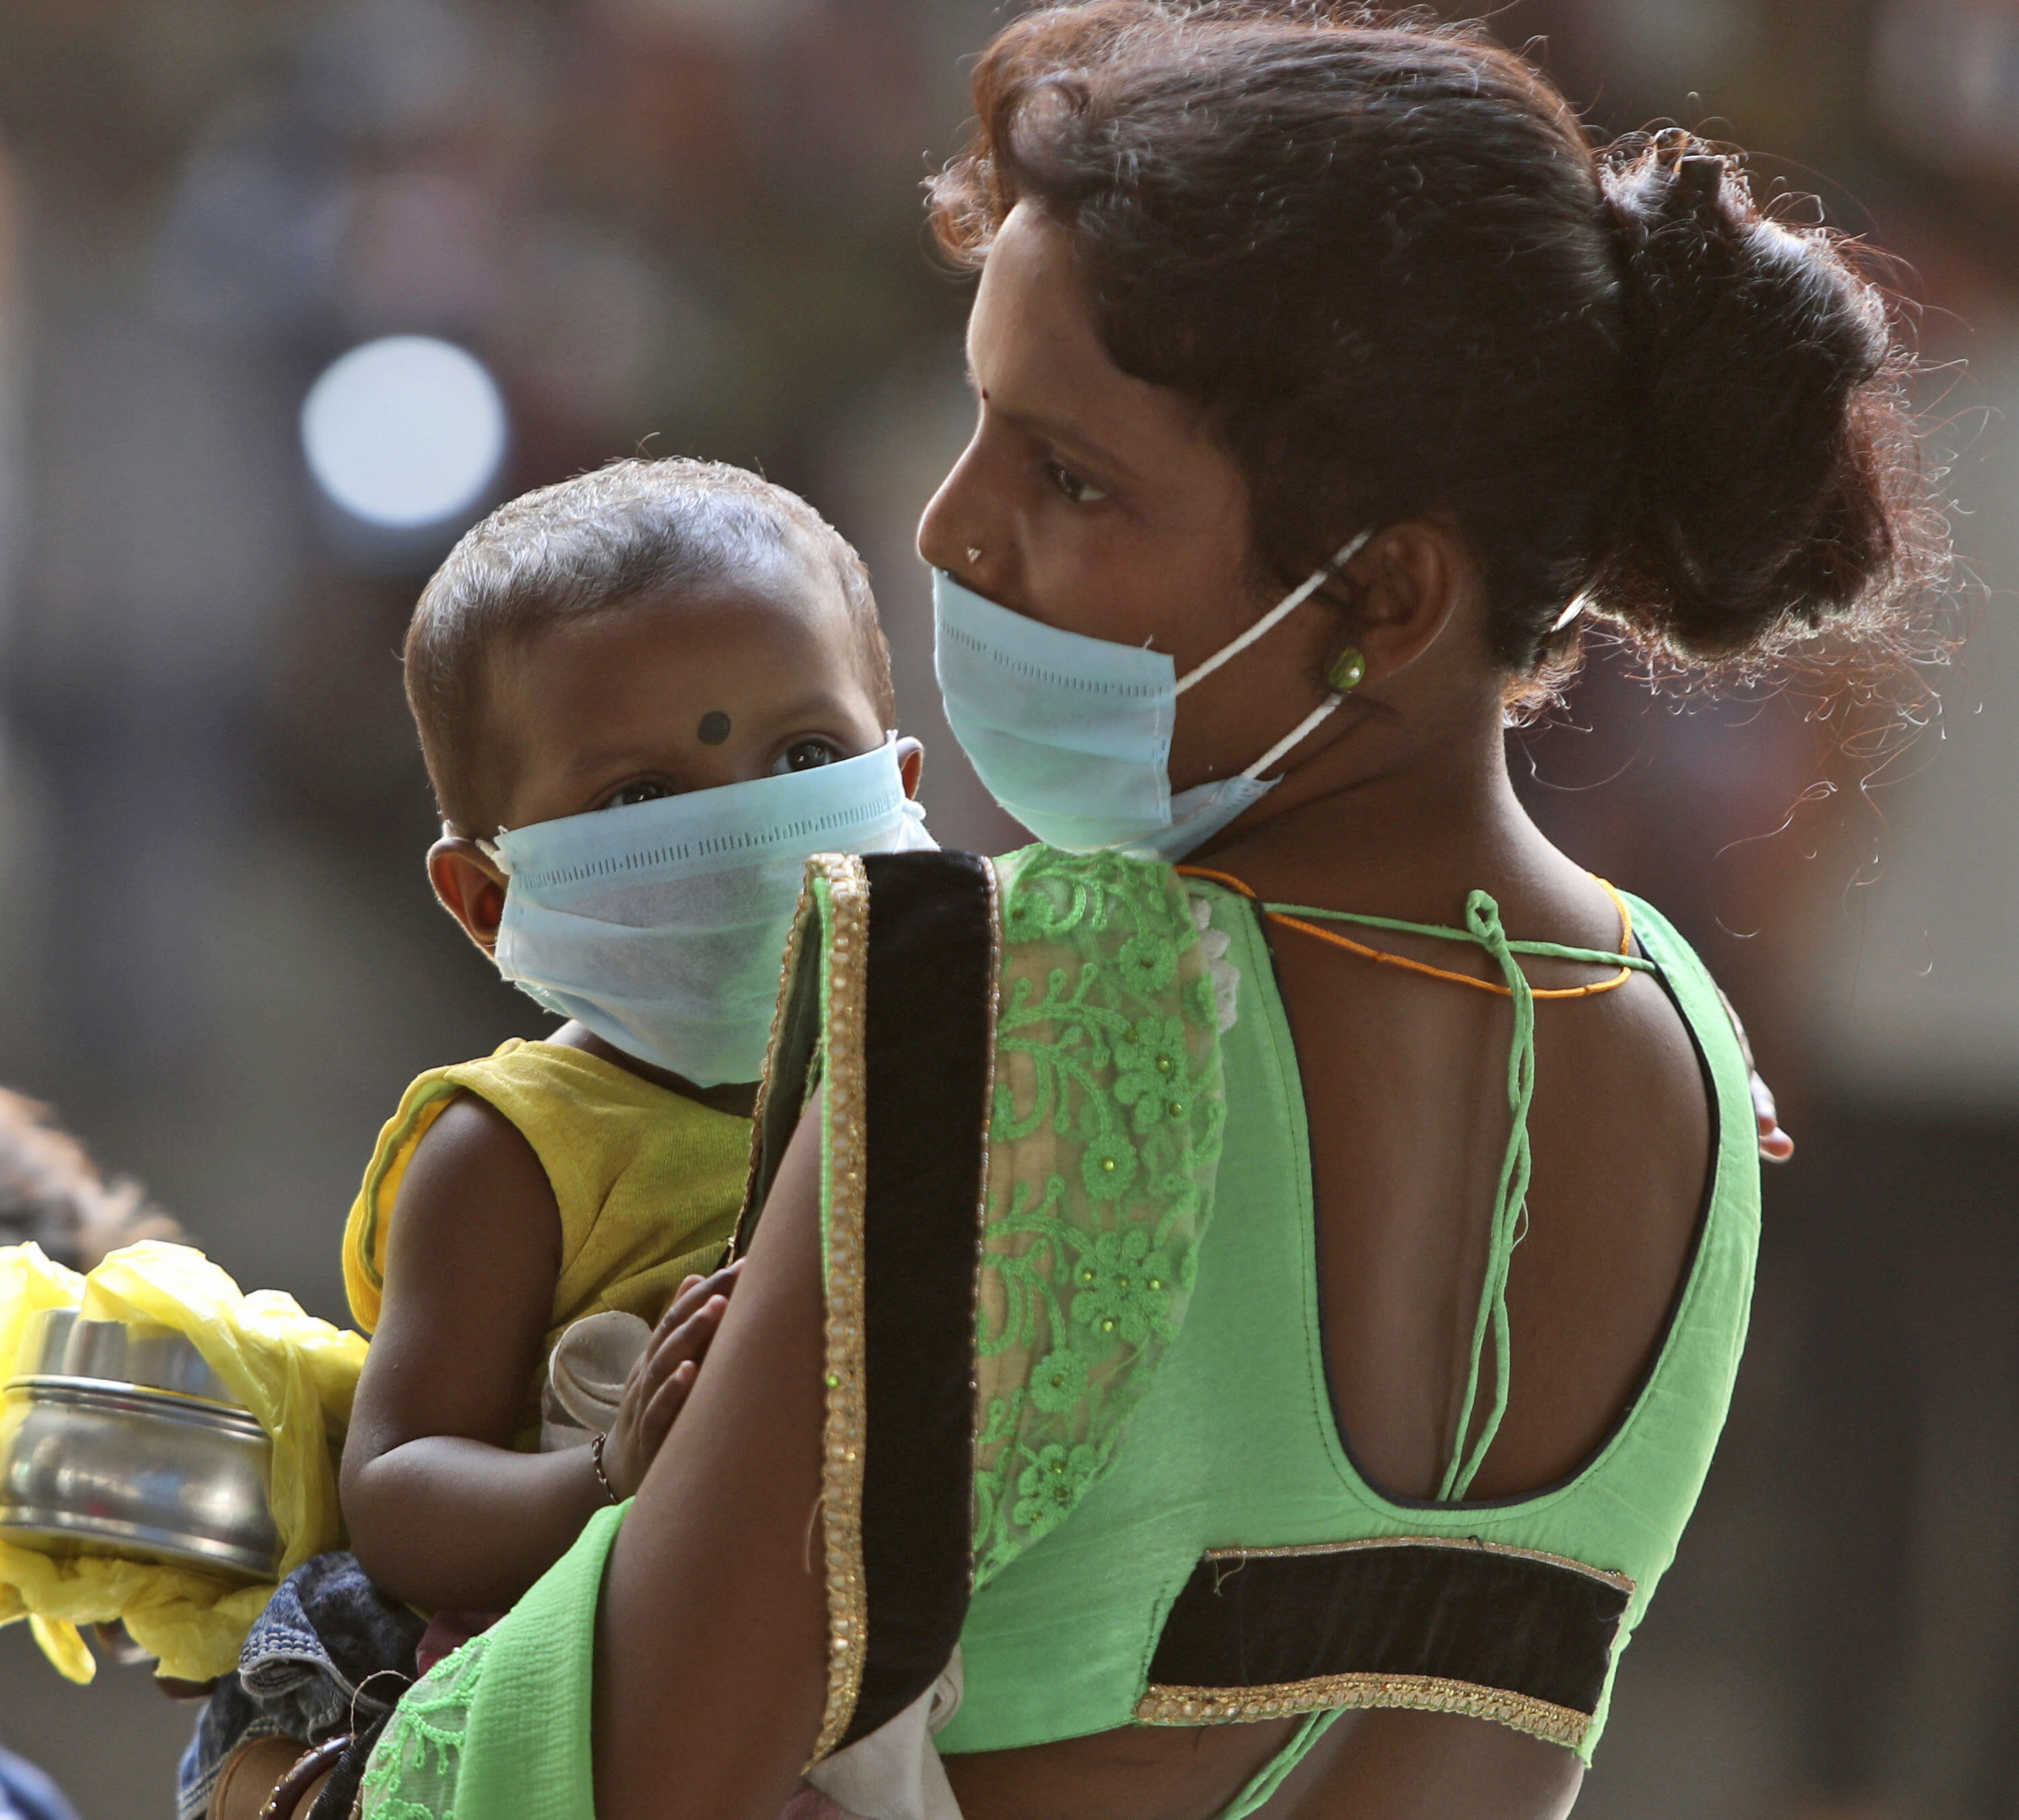 A woman wearing a face mask as a precaution against the coronavirus carries a child and waits for transportation at a bus station in Jammu, India, Friday, Sept. 11, 2020. Results of India's first nationwide study of prevailing coronavirus infections has found that for every confirmed case detected in May, authorities were missing between 82 and 130 others. At the time, India had confirmed around 35,000 cases and over 1,000 deaths. The study released Thursday shows 6.4 million people were likely infected. (AP Photo/Channi Anand)